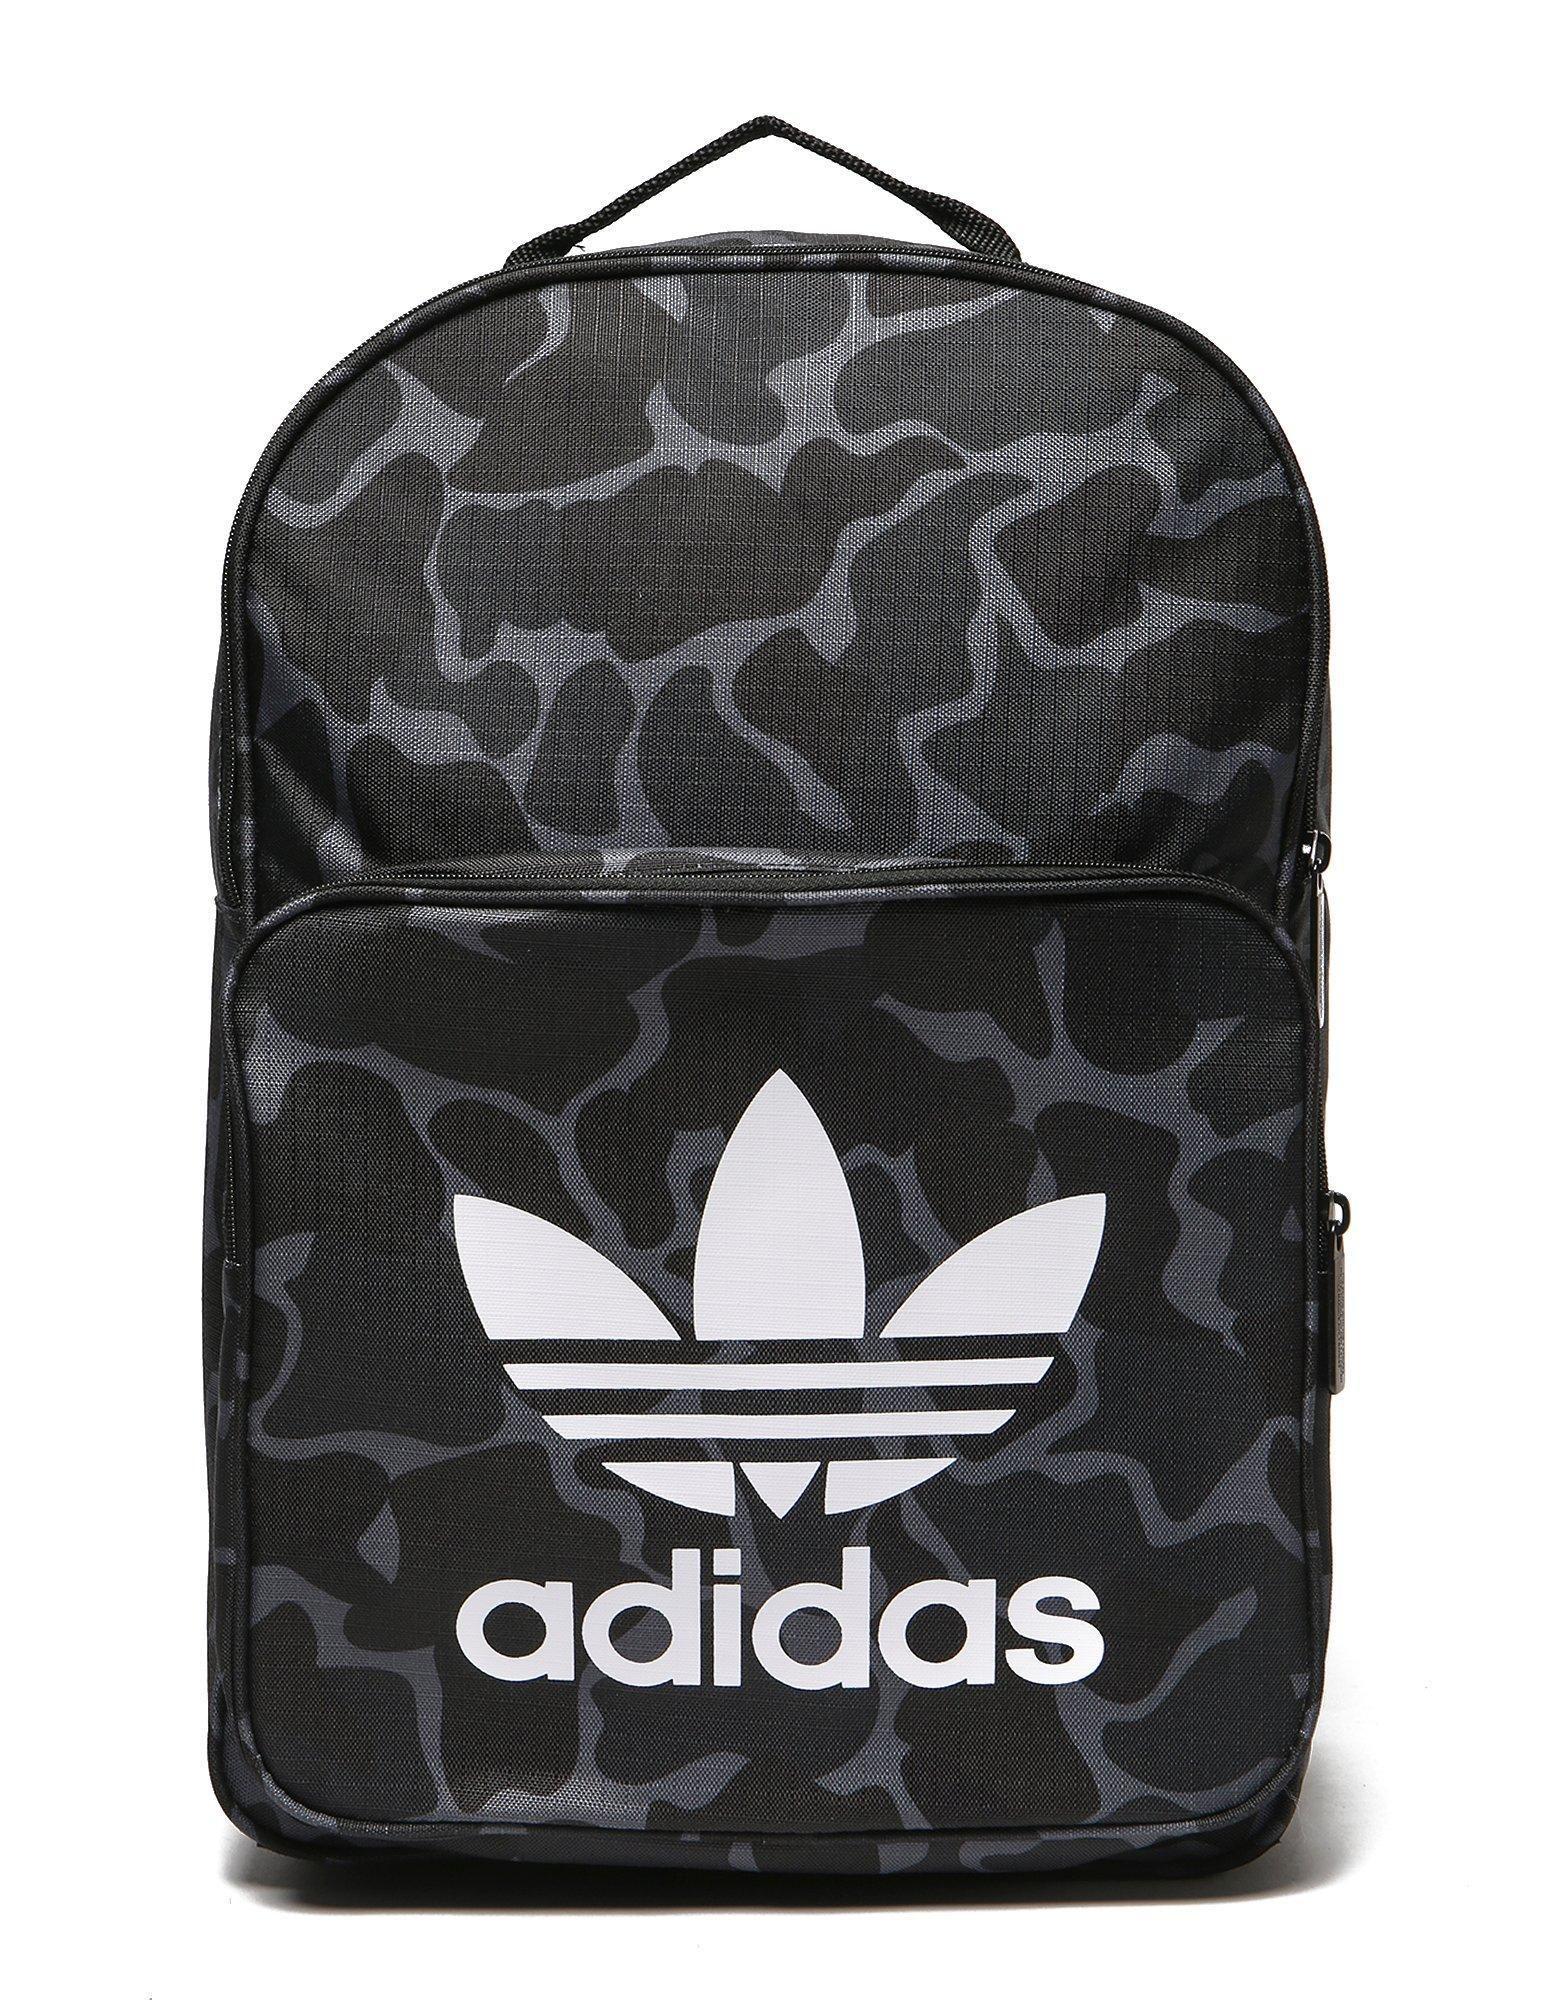 Lyst - adidas Originals Classic Camo Backpack in Black for Men e0757215ee6b0